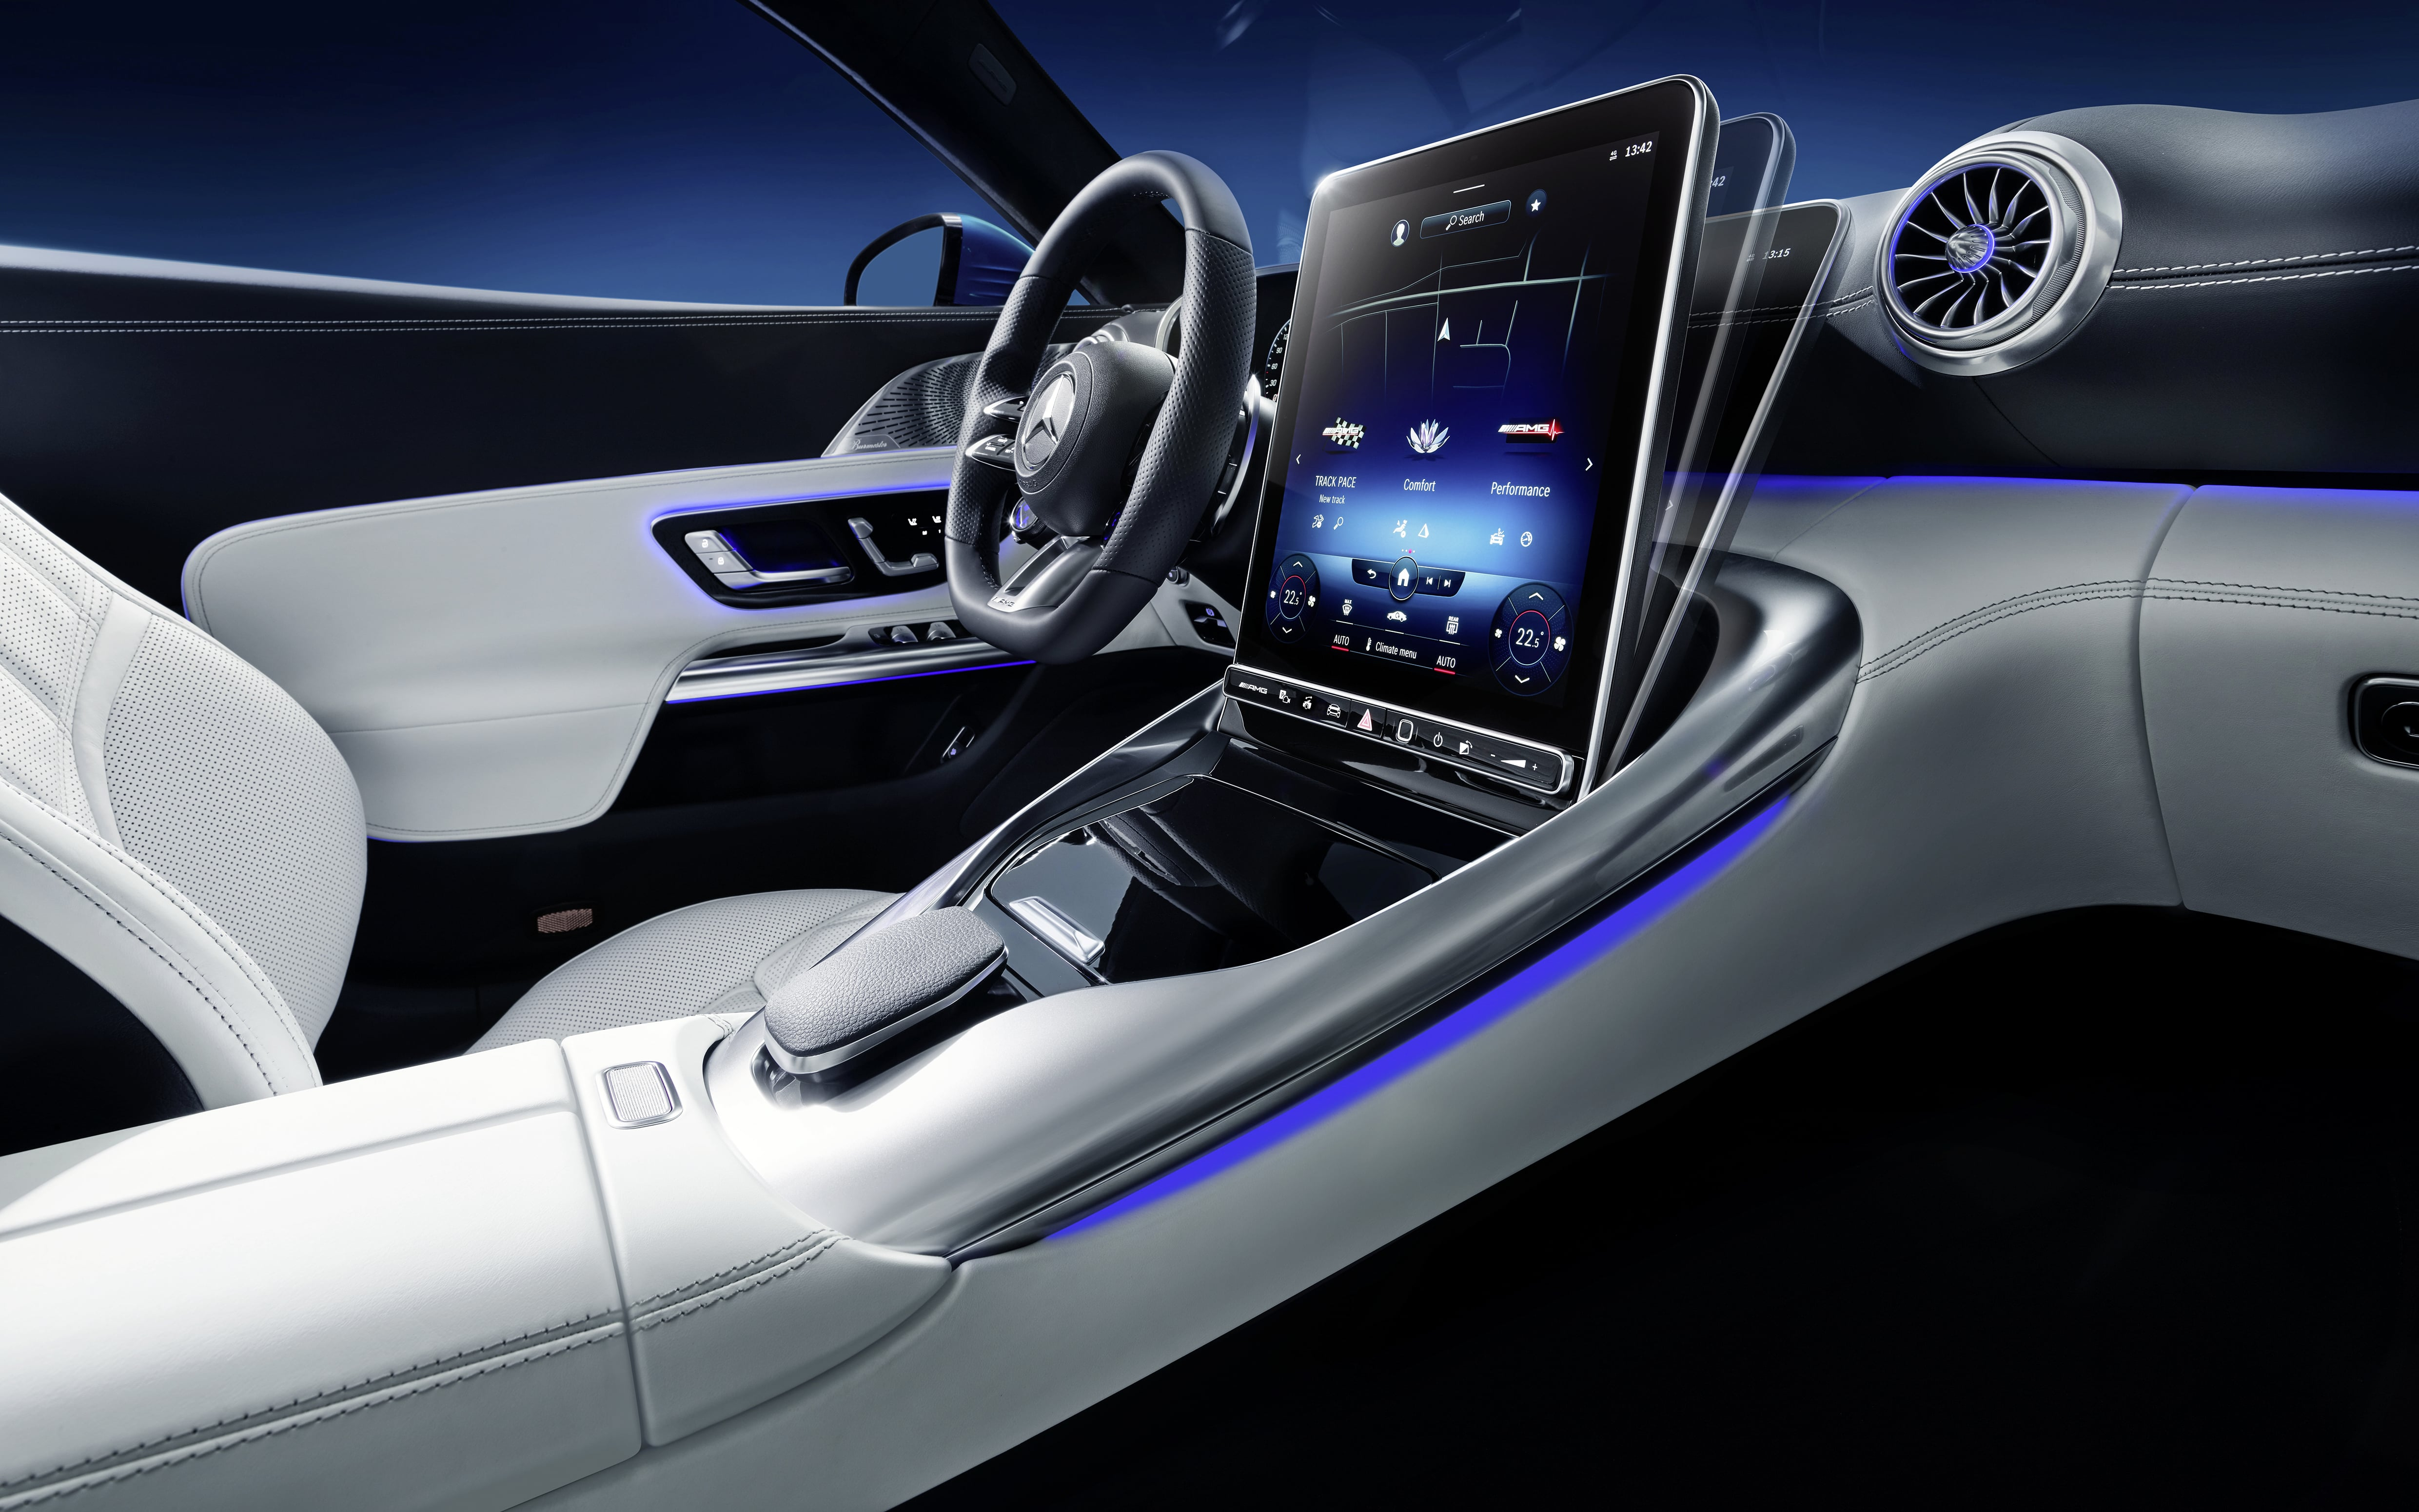 Exclusive insights into the interior of the new Mercedes-AMG SL